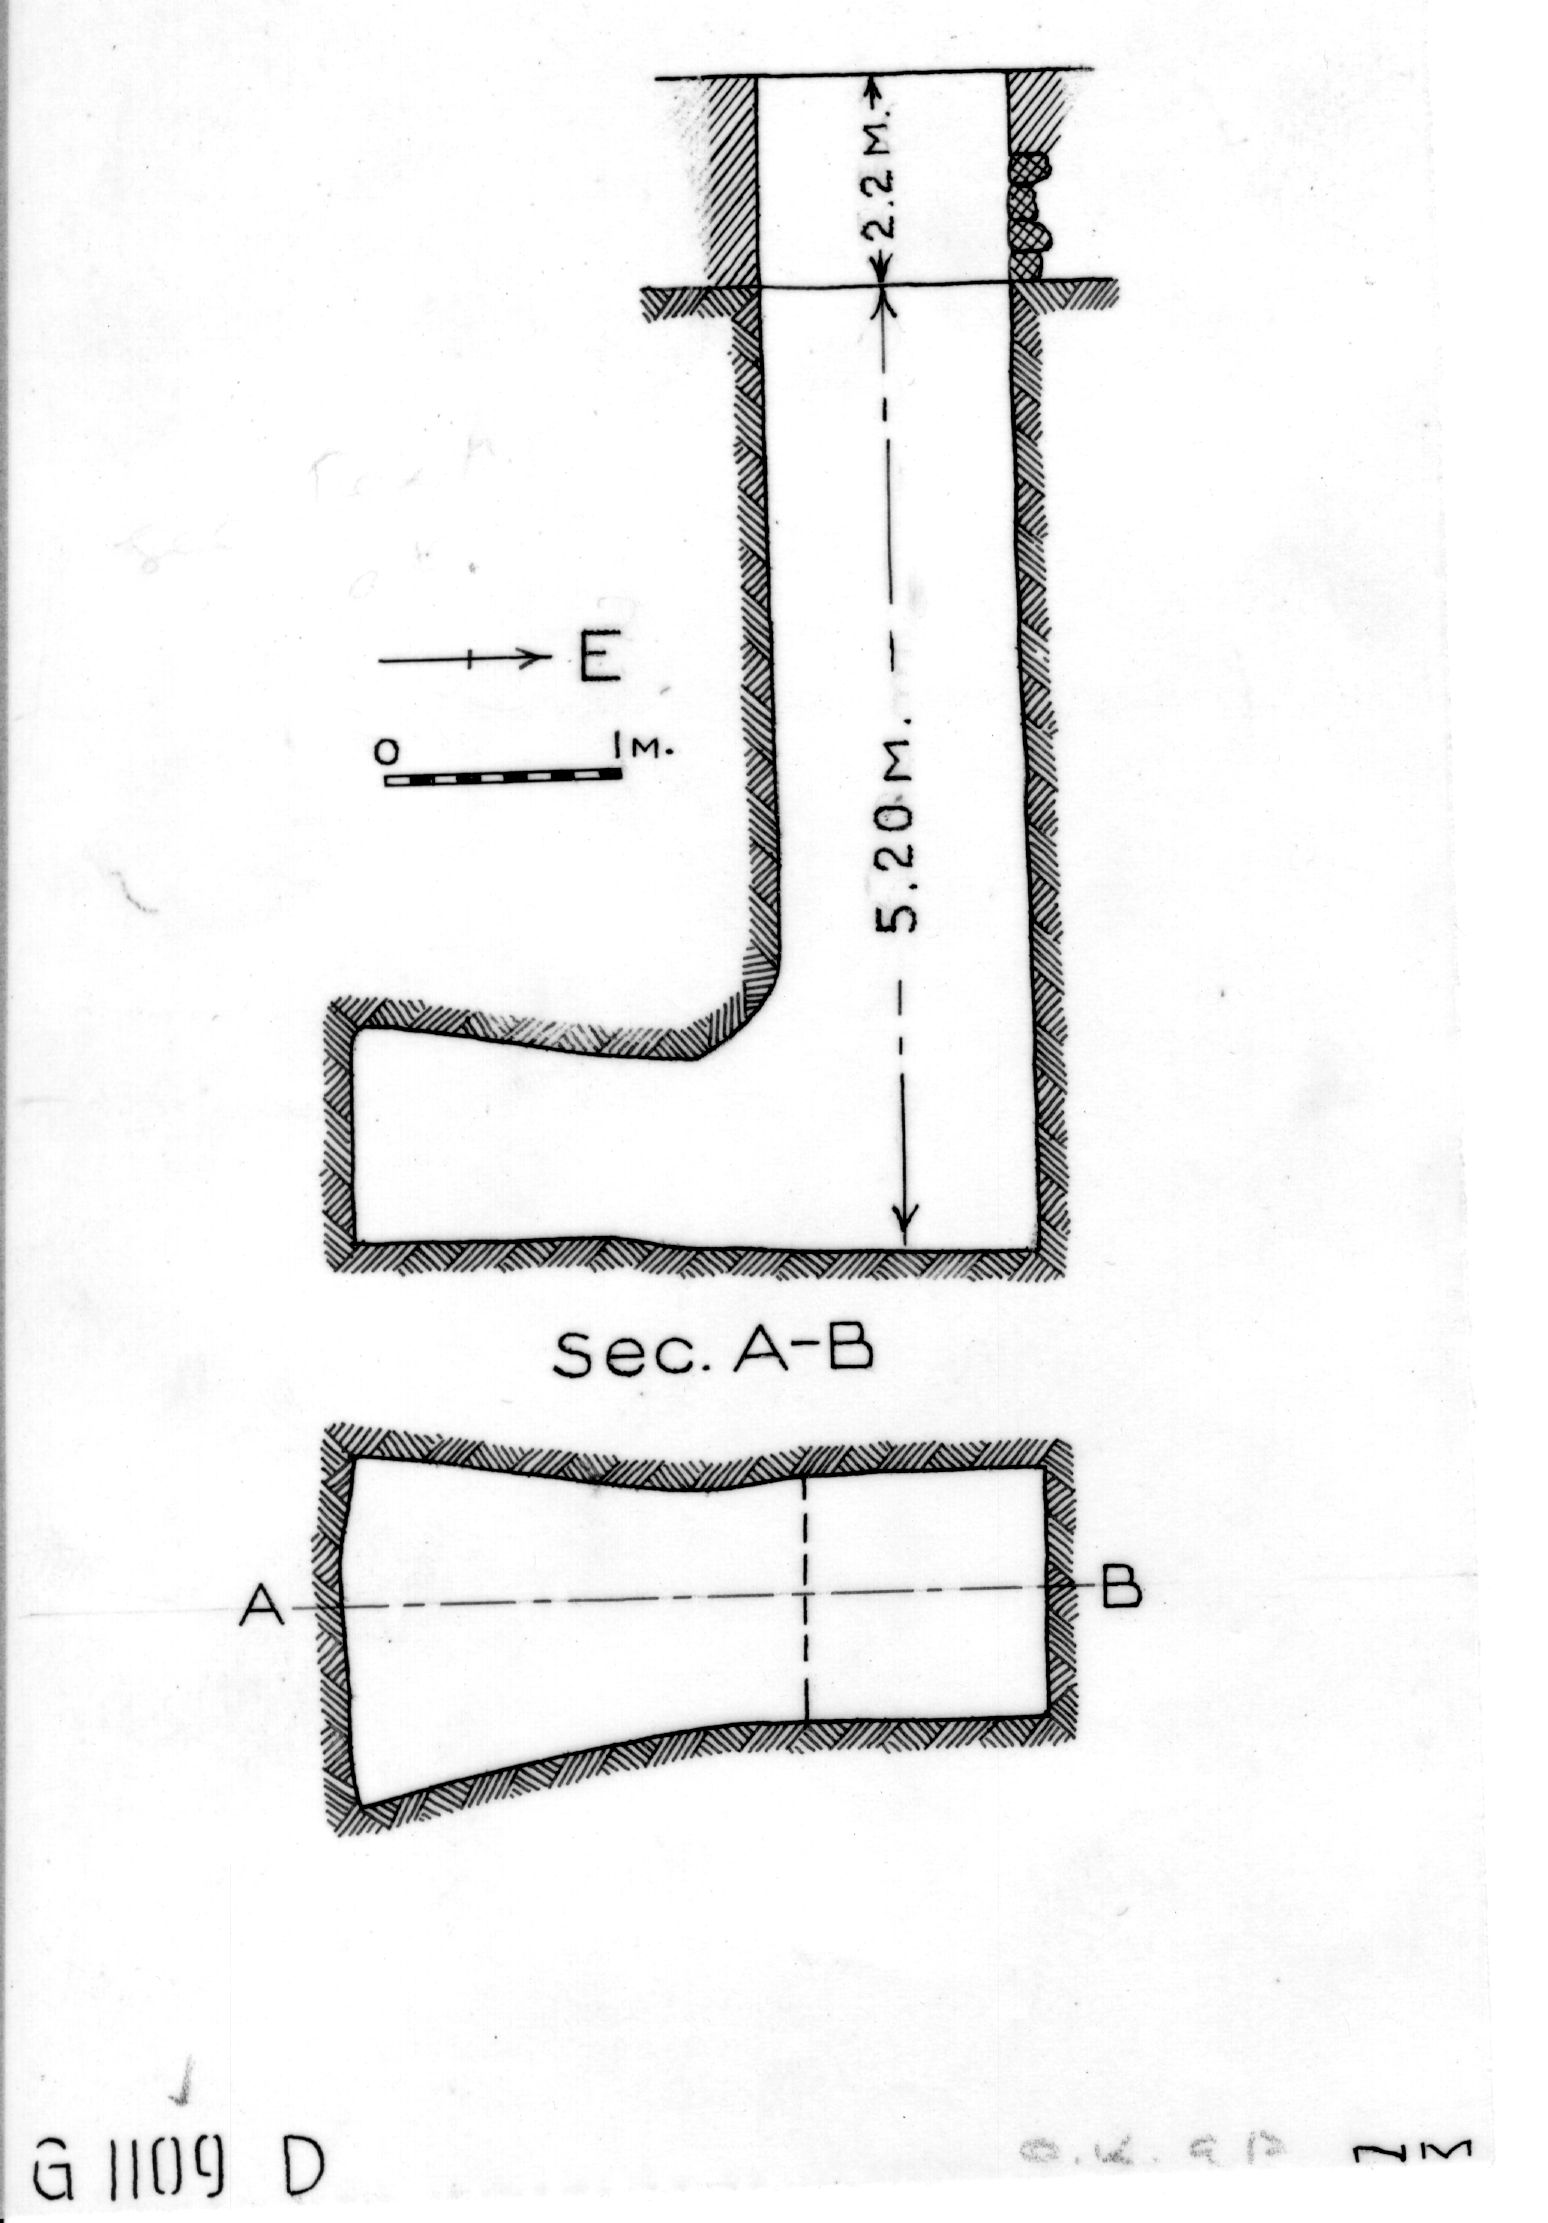 Maps and plans: G 1109, Shaft D